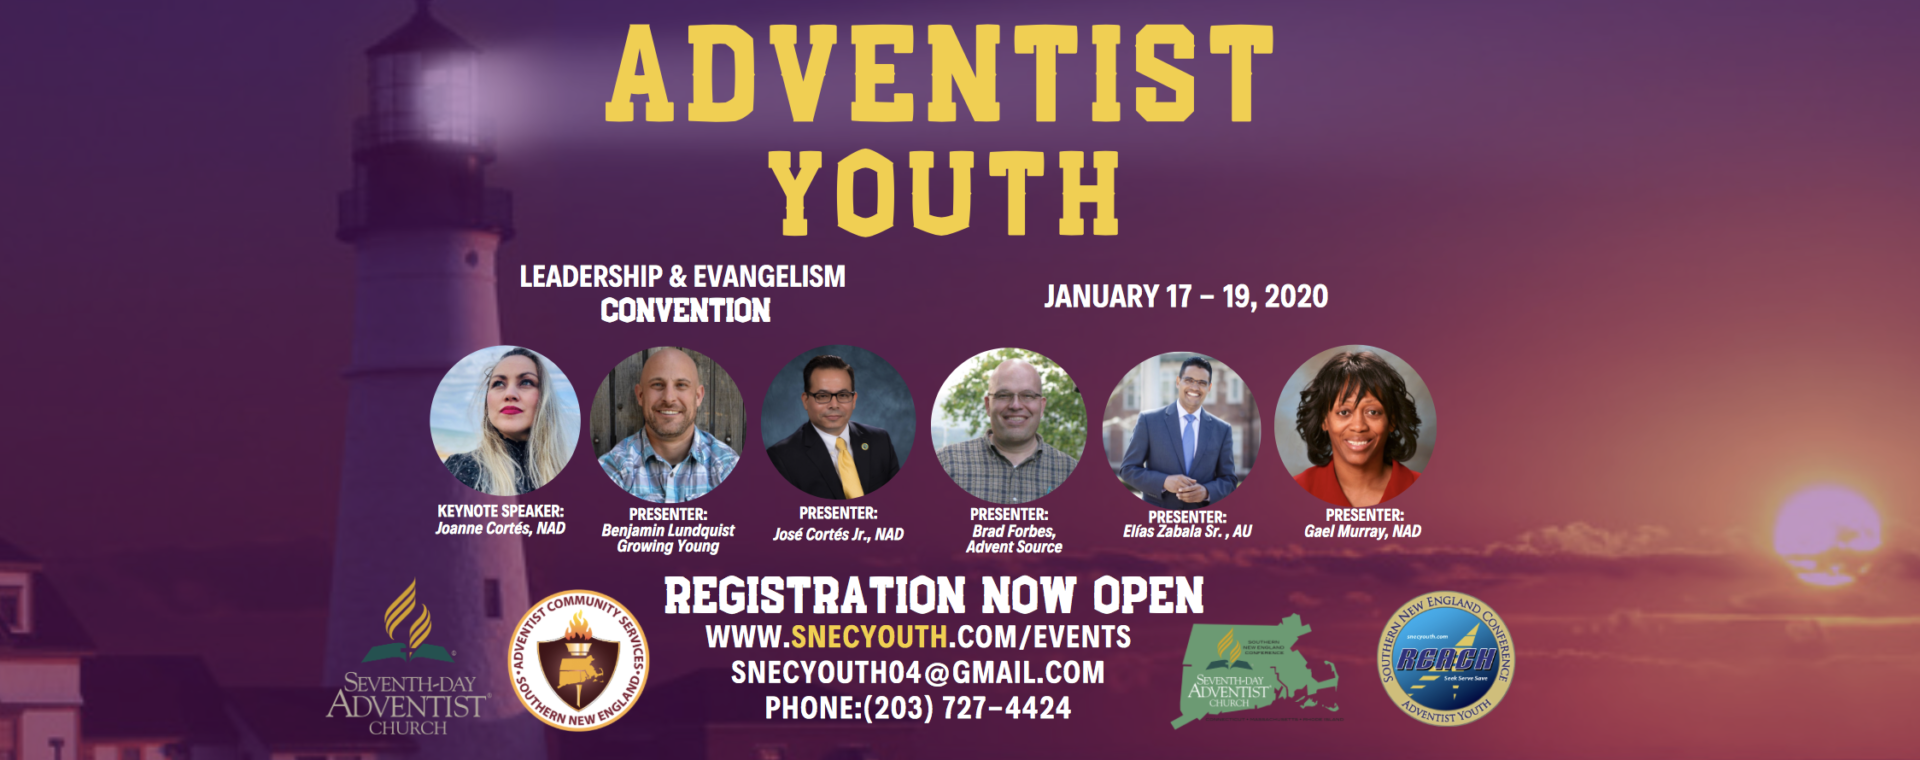 SNEC YOUTH